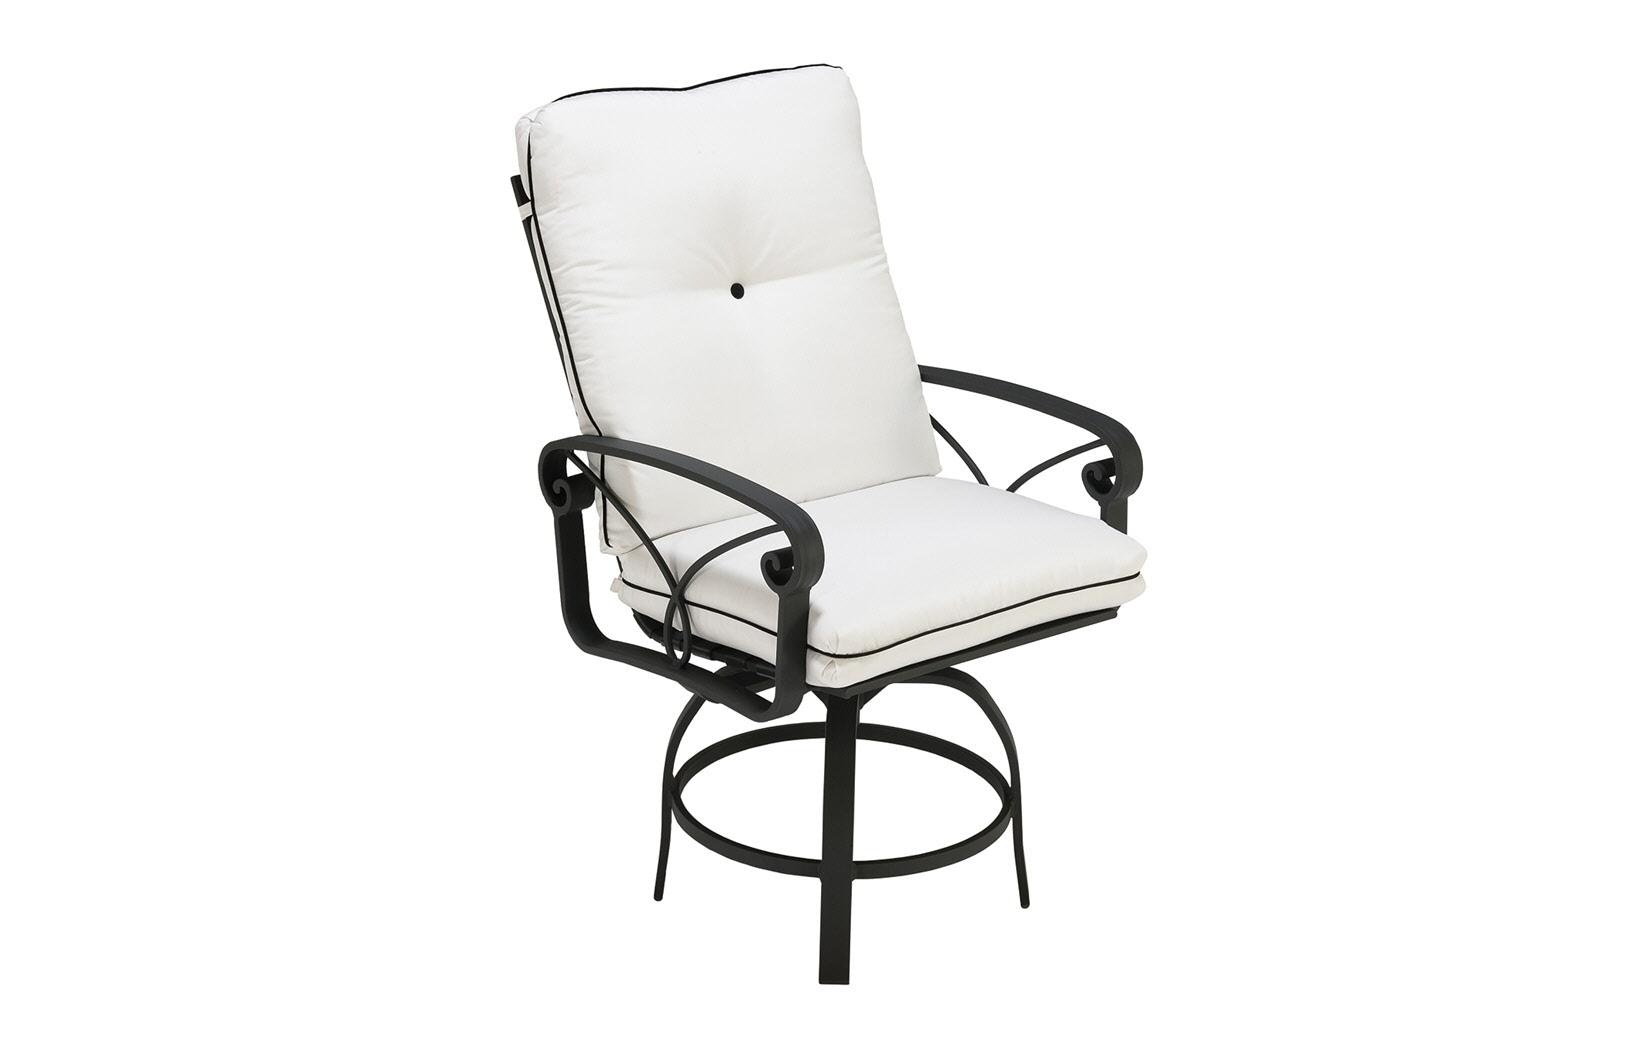 Outdoor/Patio Counter Stool By Winston M23013B   Patios USA   USA  Questions? Call 888.643.6003